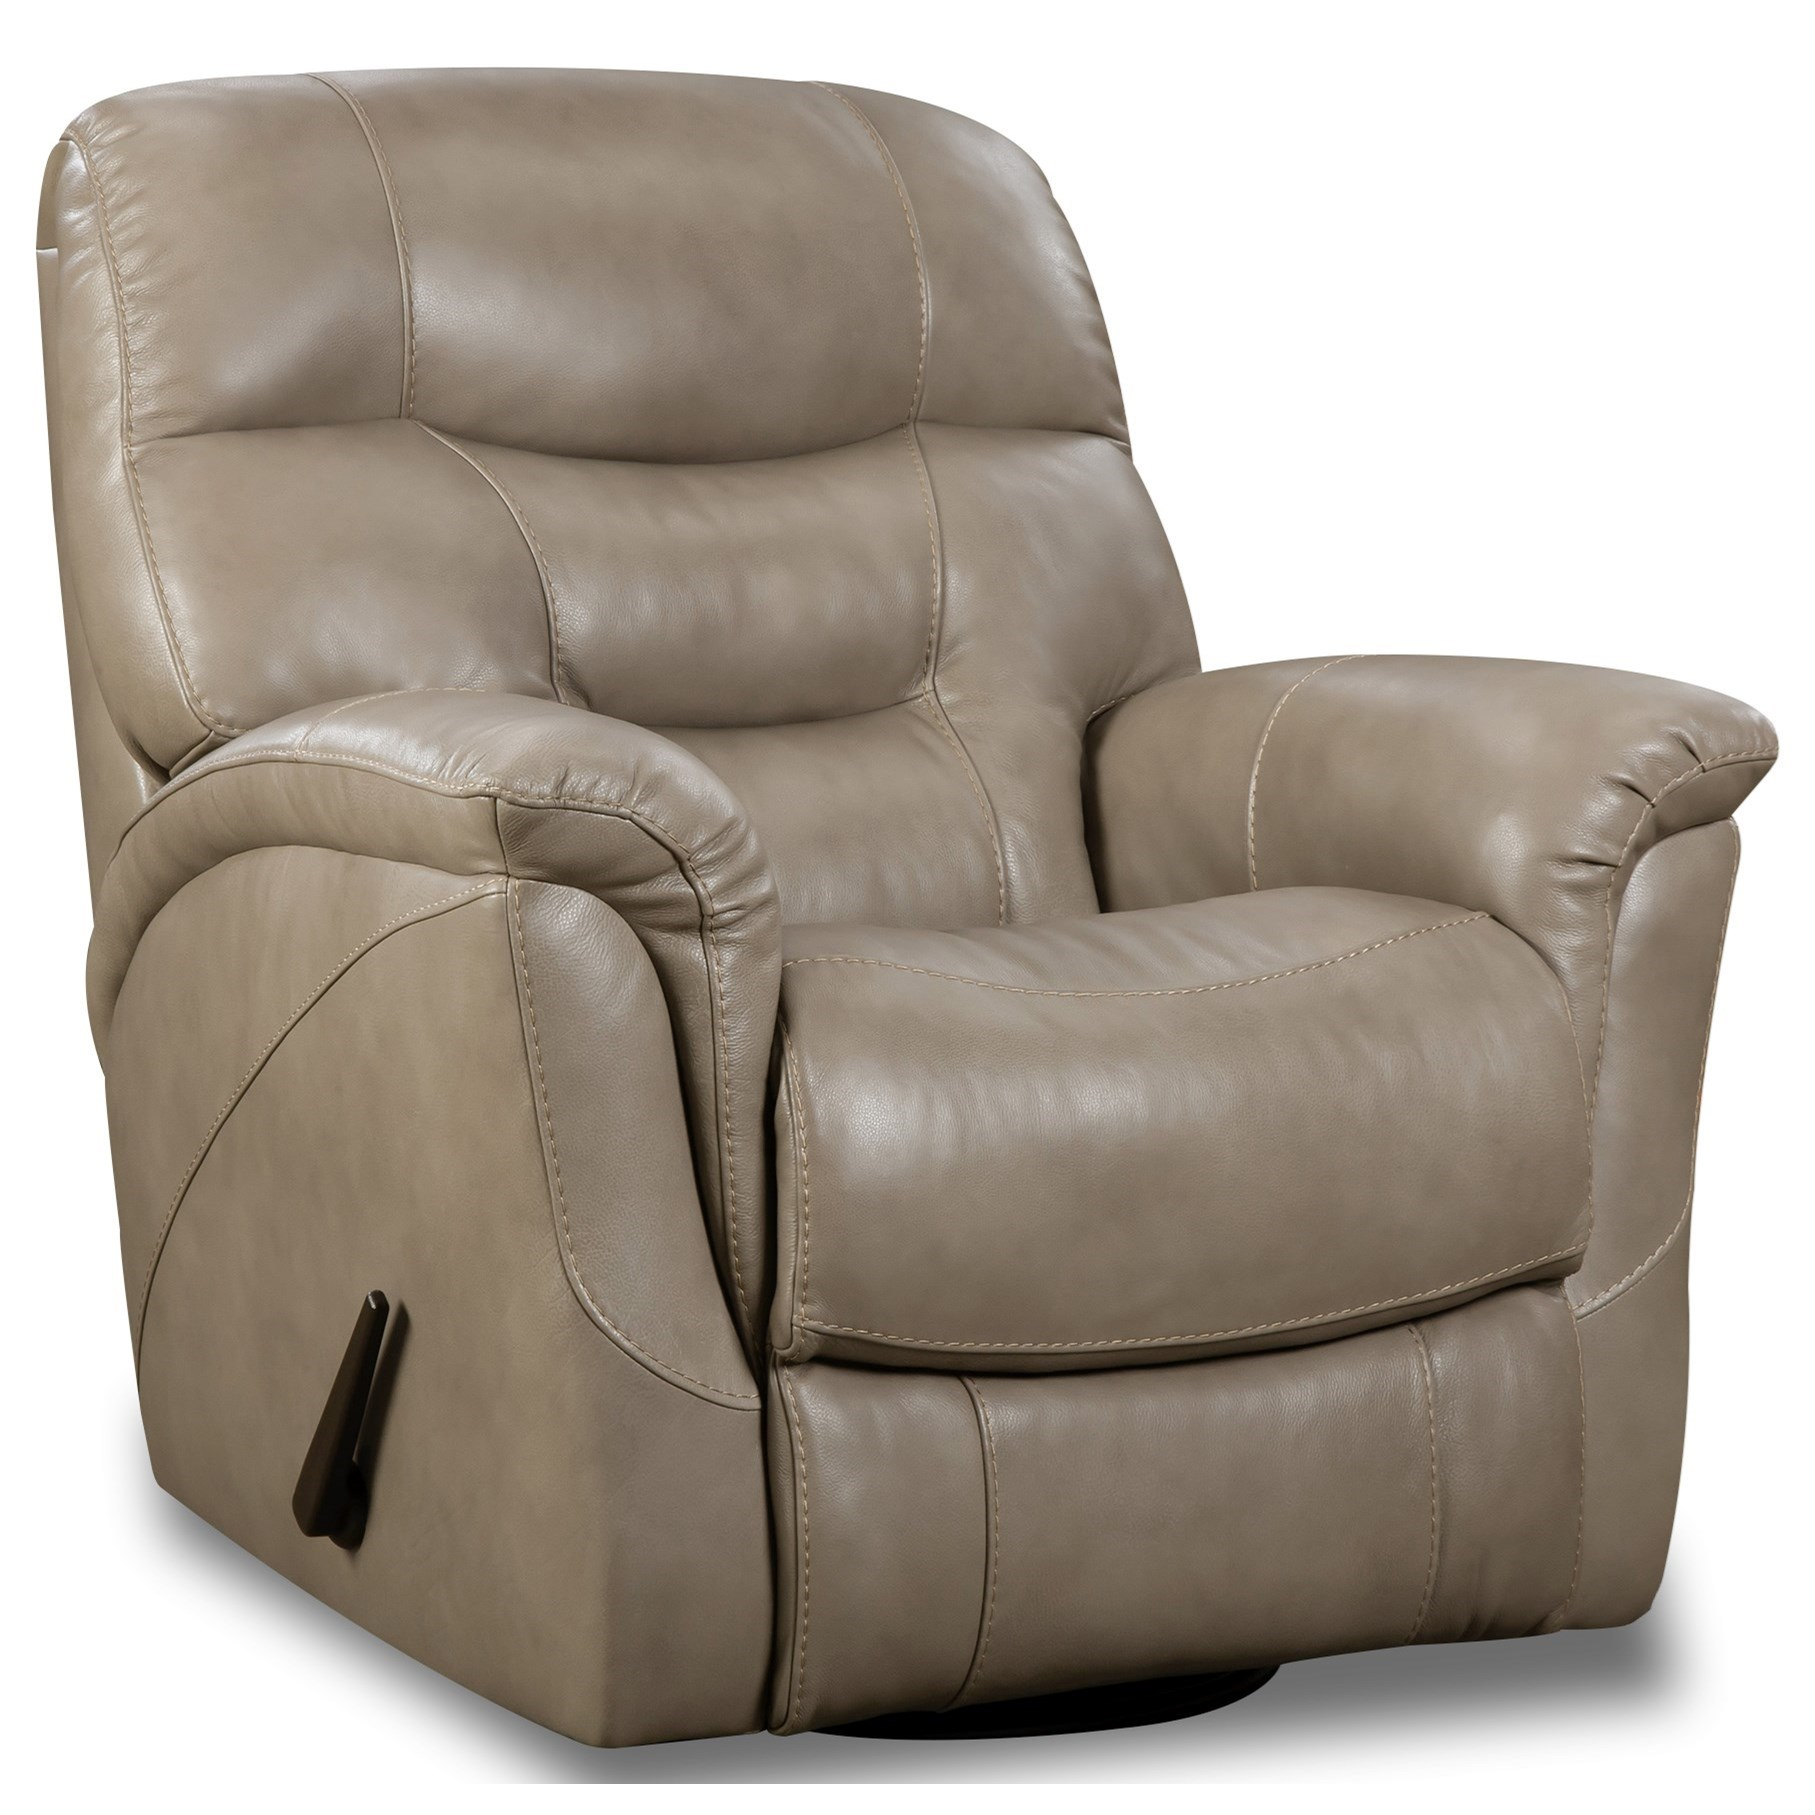 Merino Swivel Glider Recliner by HomeStretch at Gill Brothers Furniture